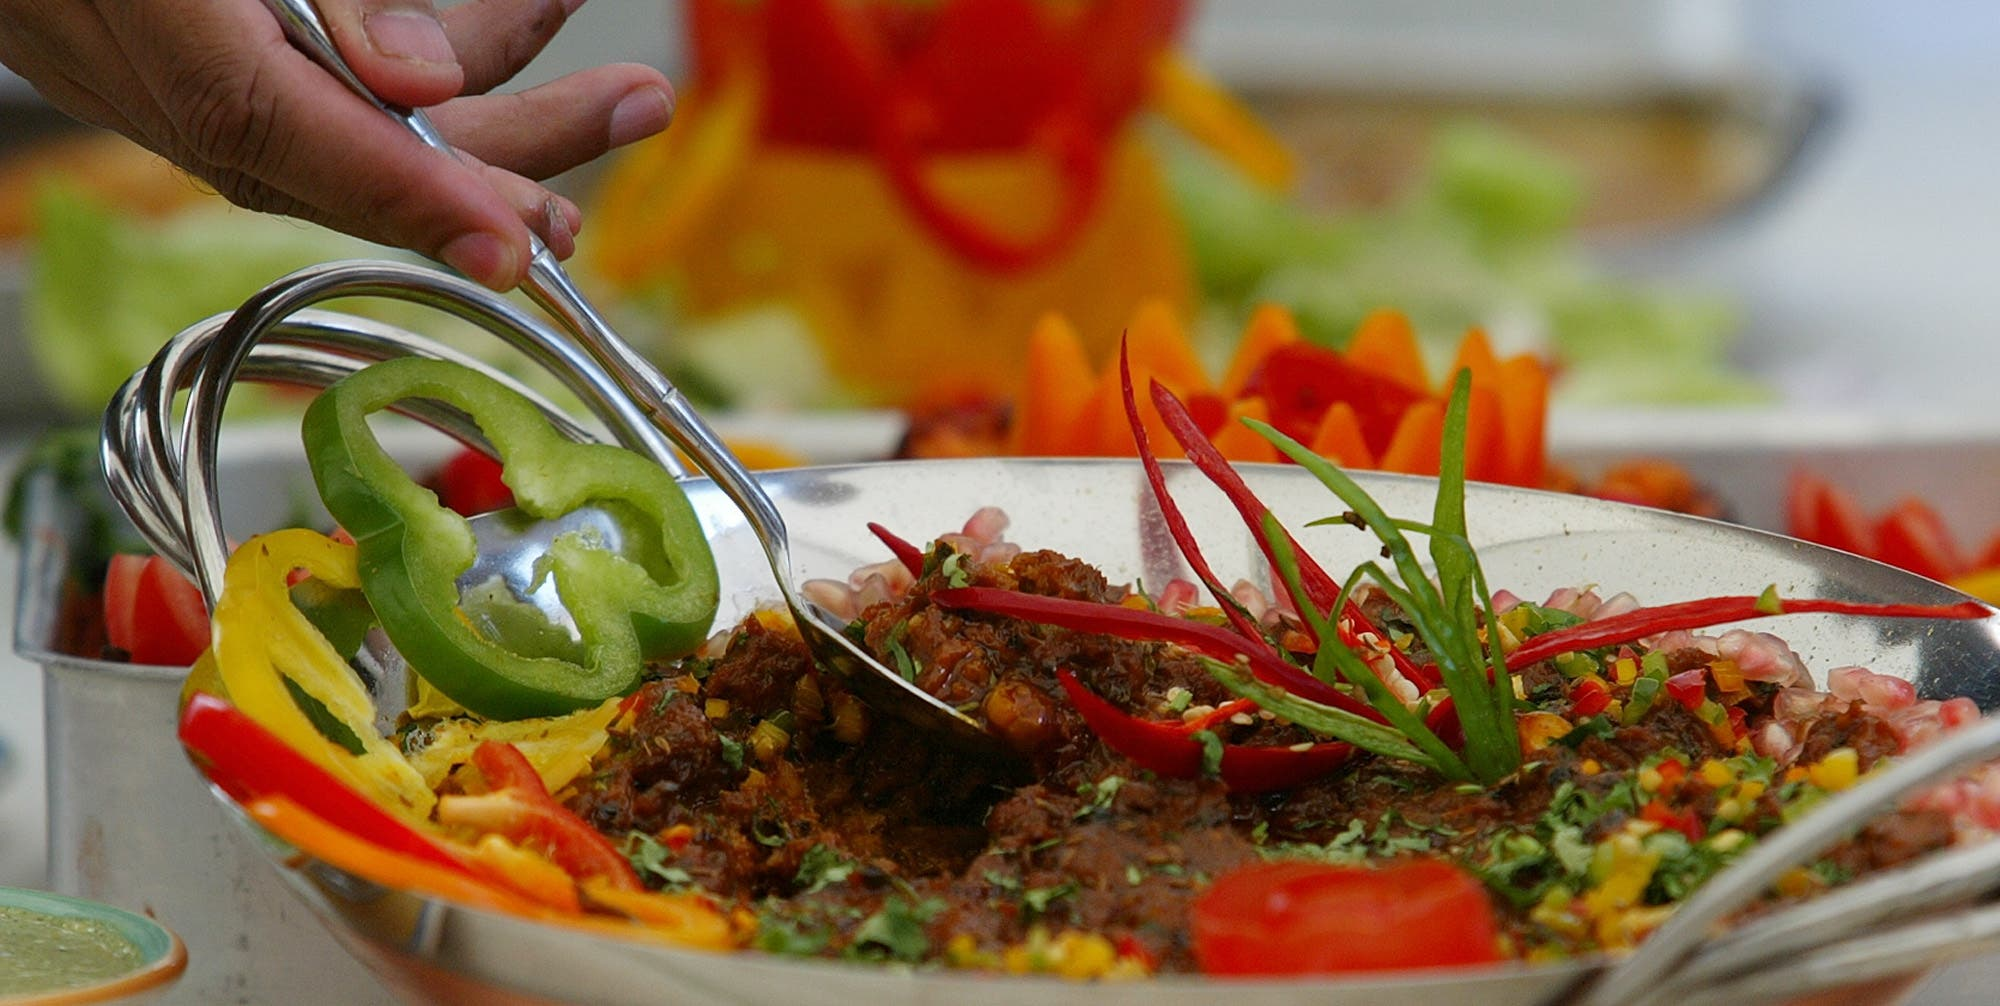 Indian curries have been hot favorite of British diners for decades (File photo: AP)